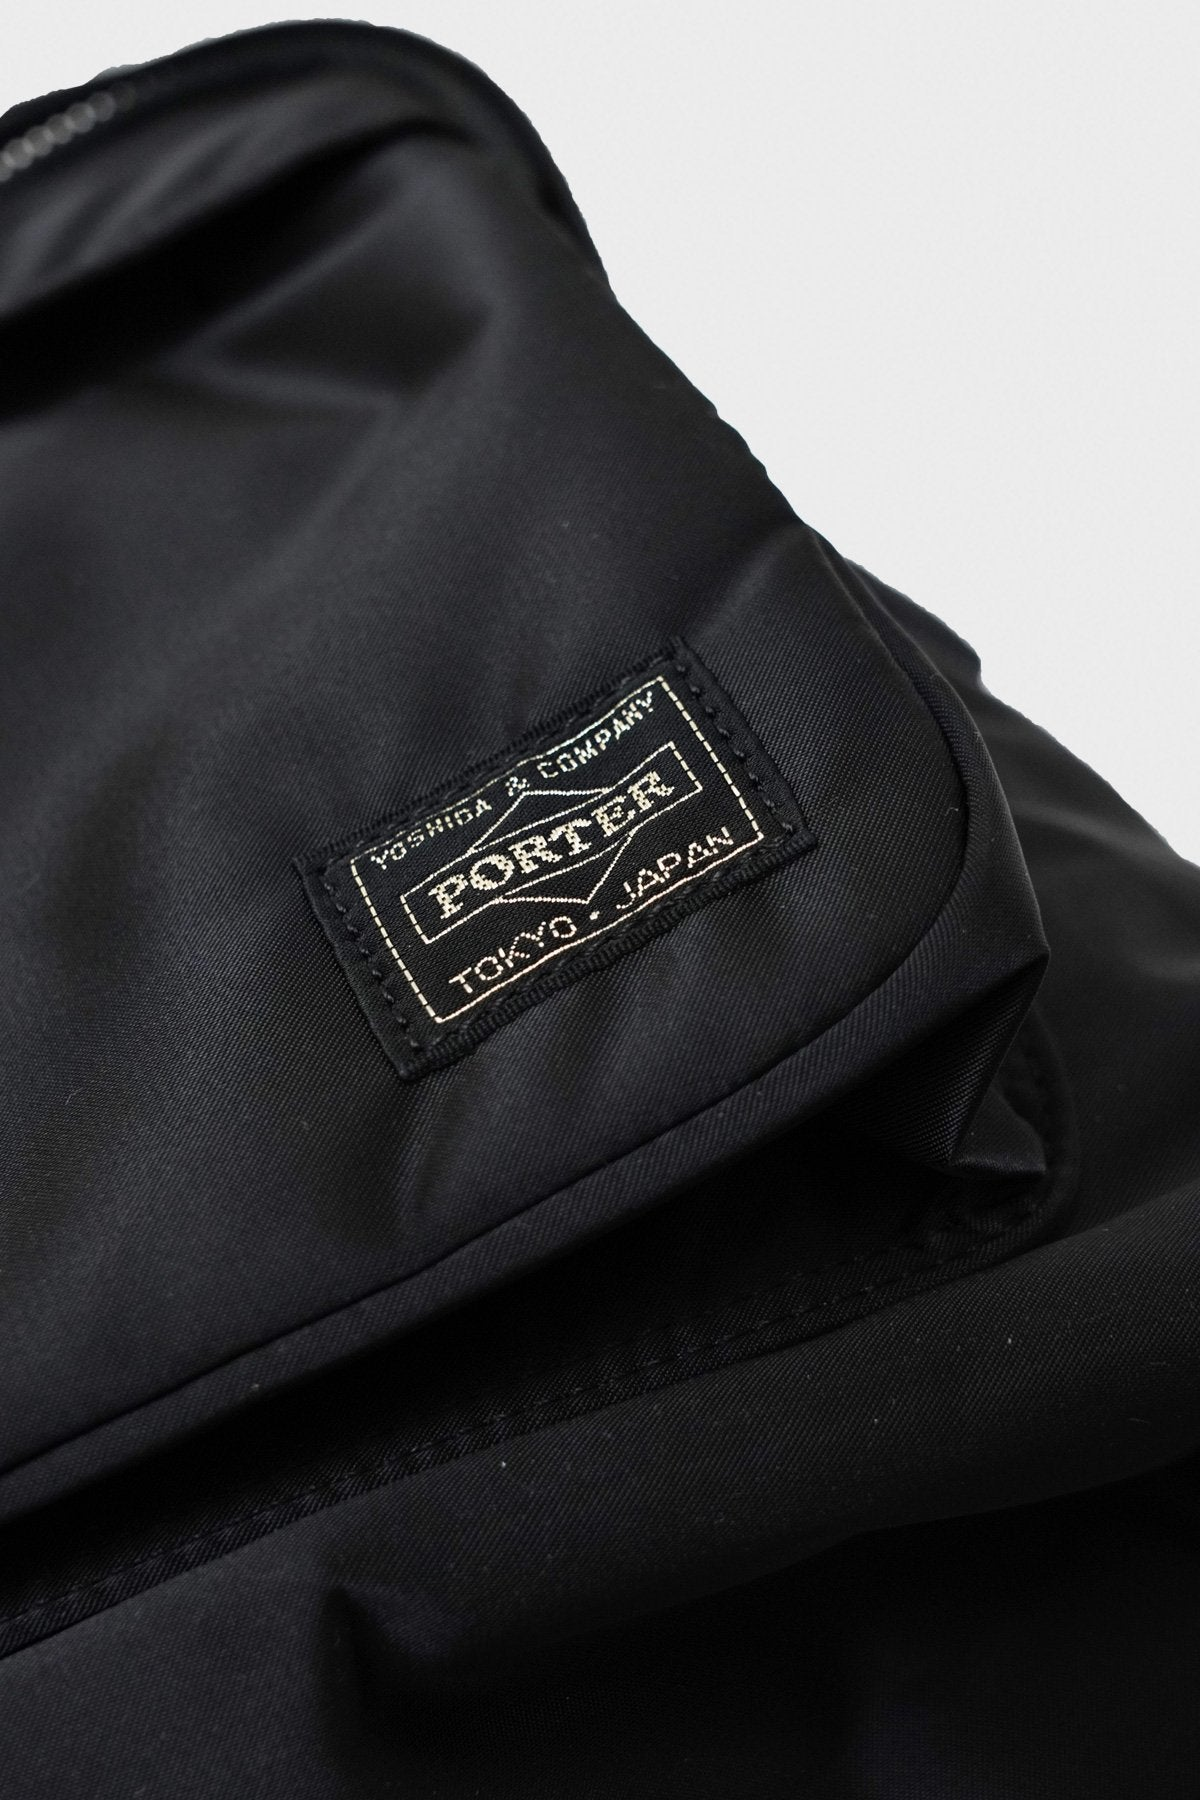 Porter Yoshida and Co - Daypack - Black - Canoe Club